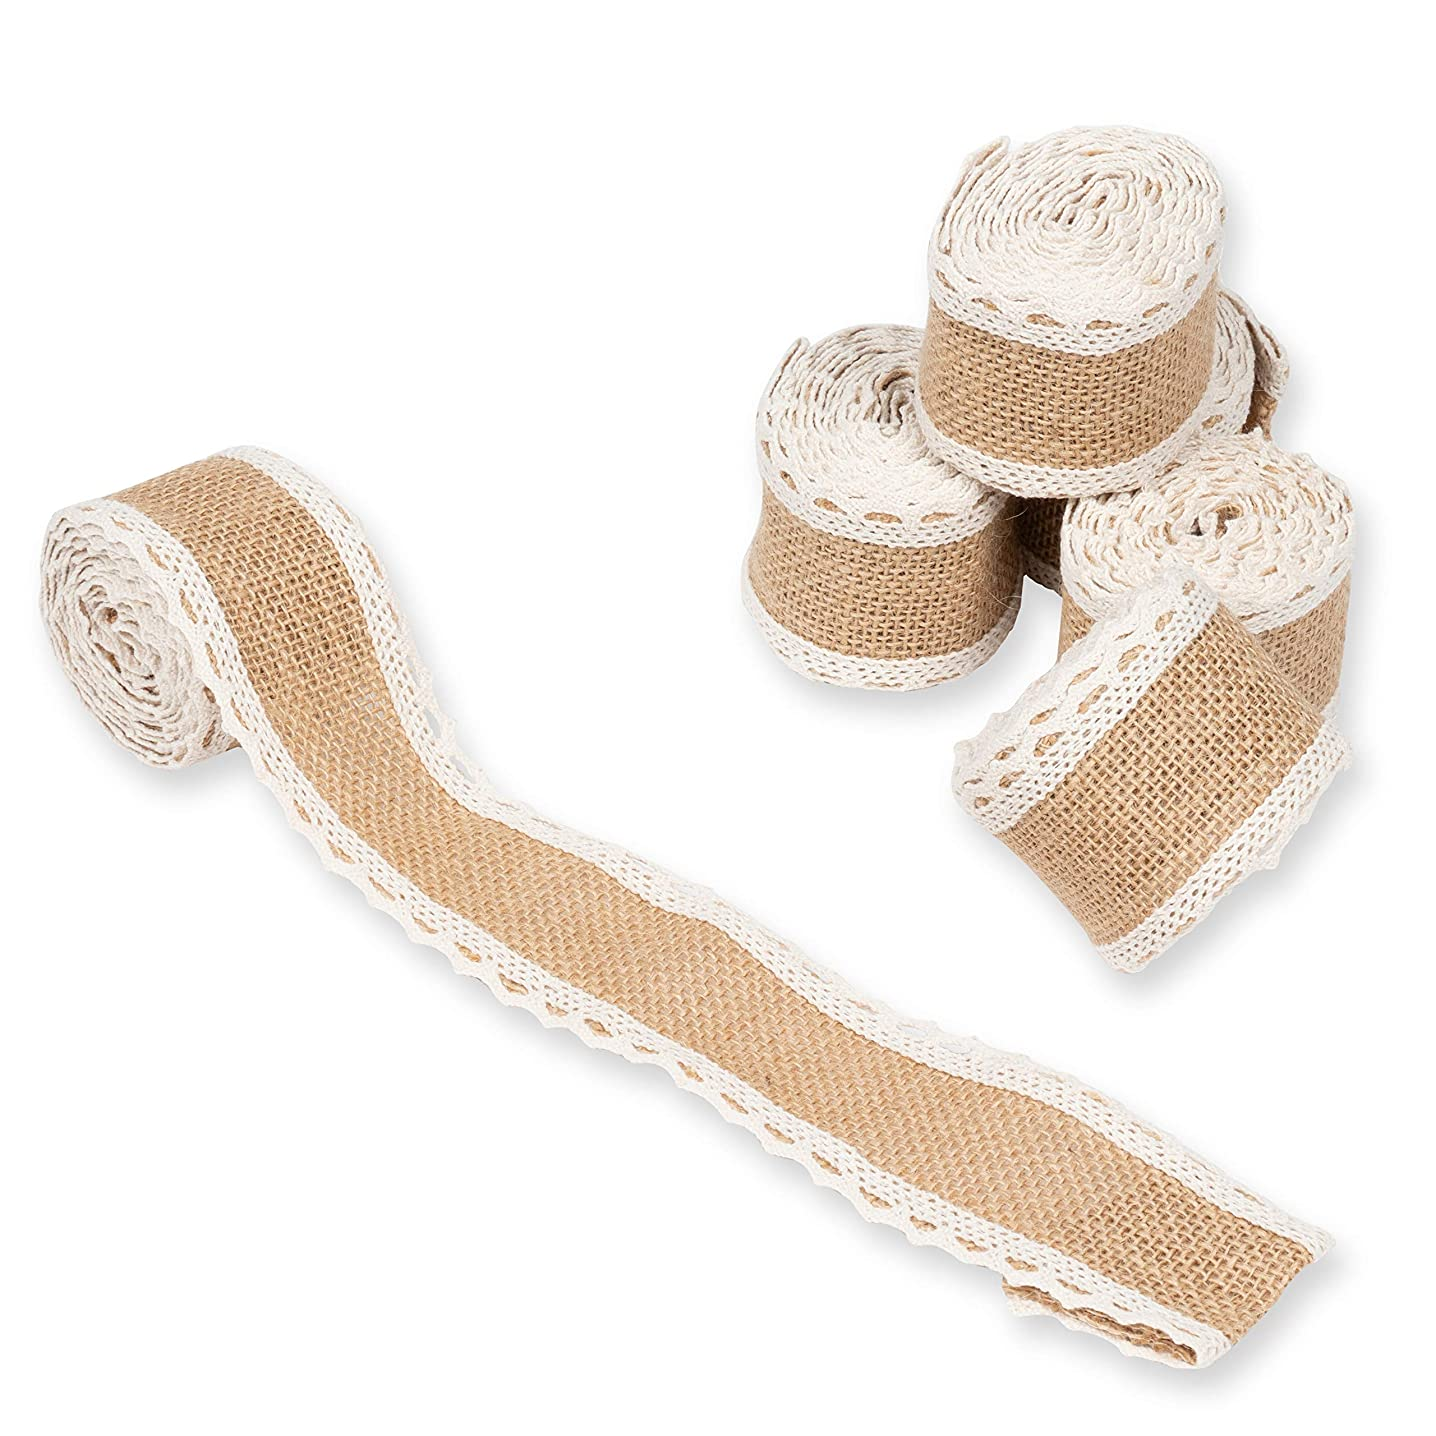 Burlap Fabric Roll - 6-Pack 2.24-Inch Brown Burlap Ribbon with White Laces for Crafts, 2 Yards Each